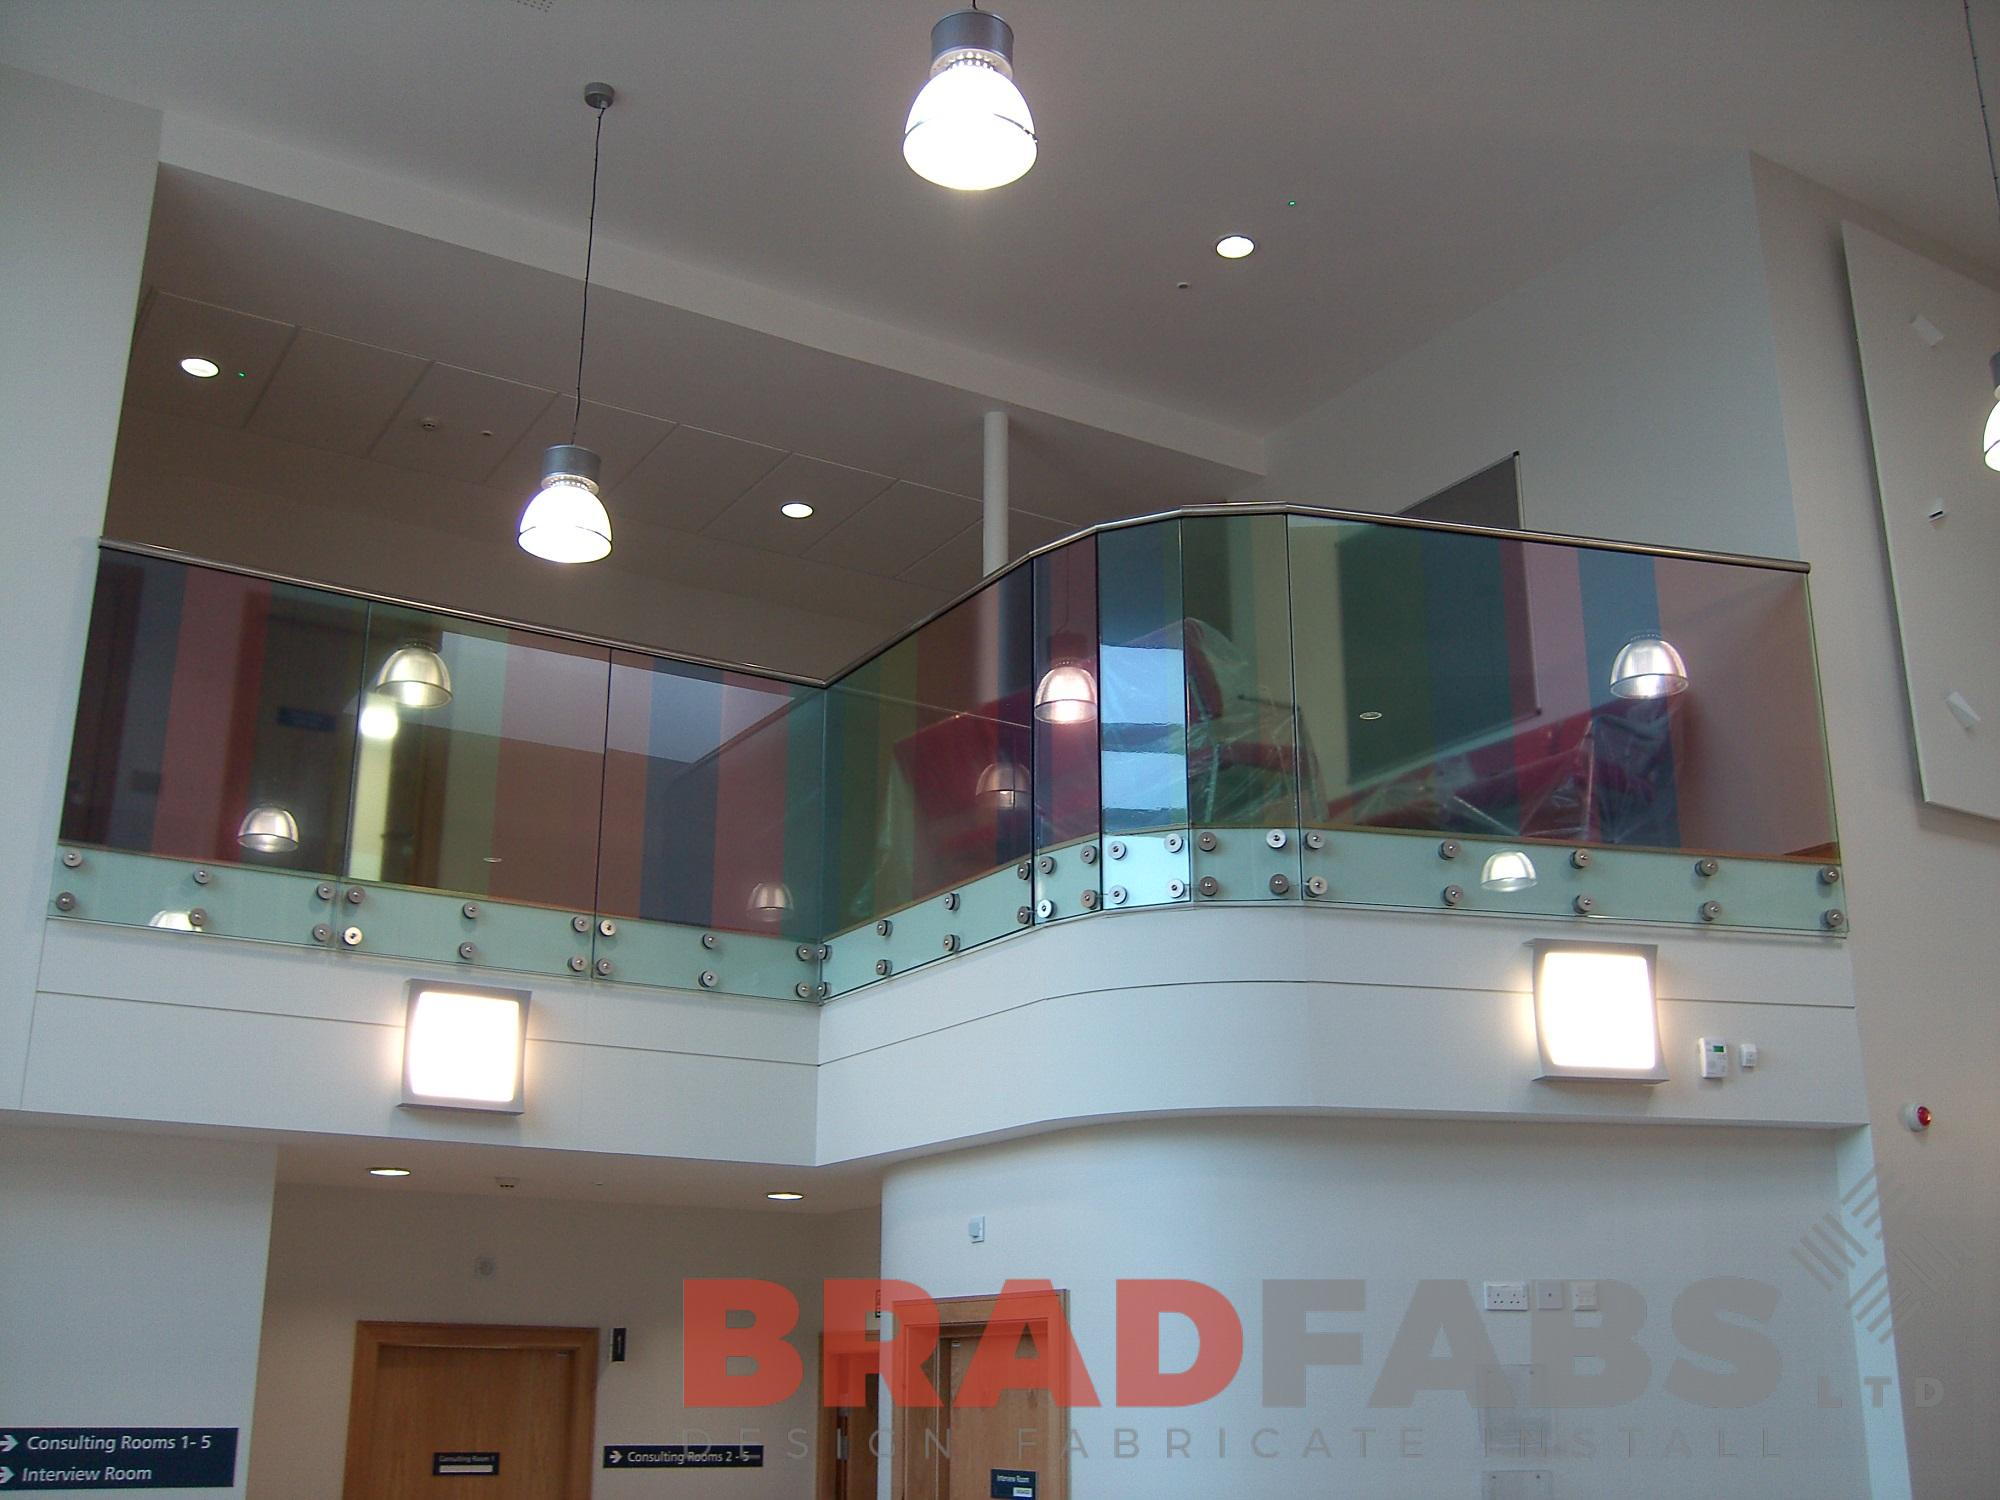 colourful decorative balustrade with stainless steel handrail